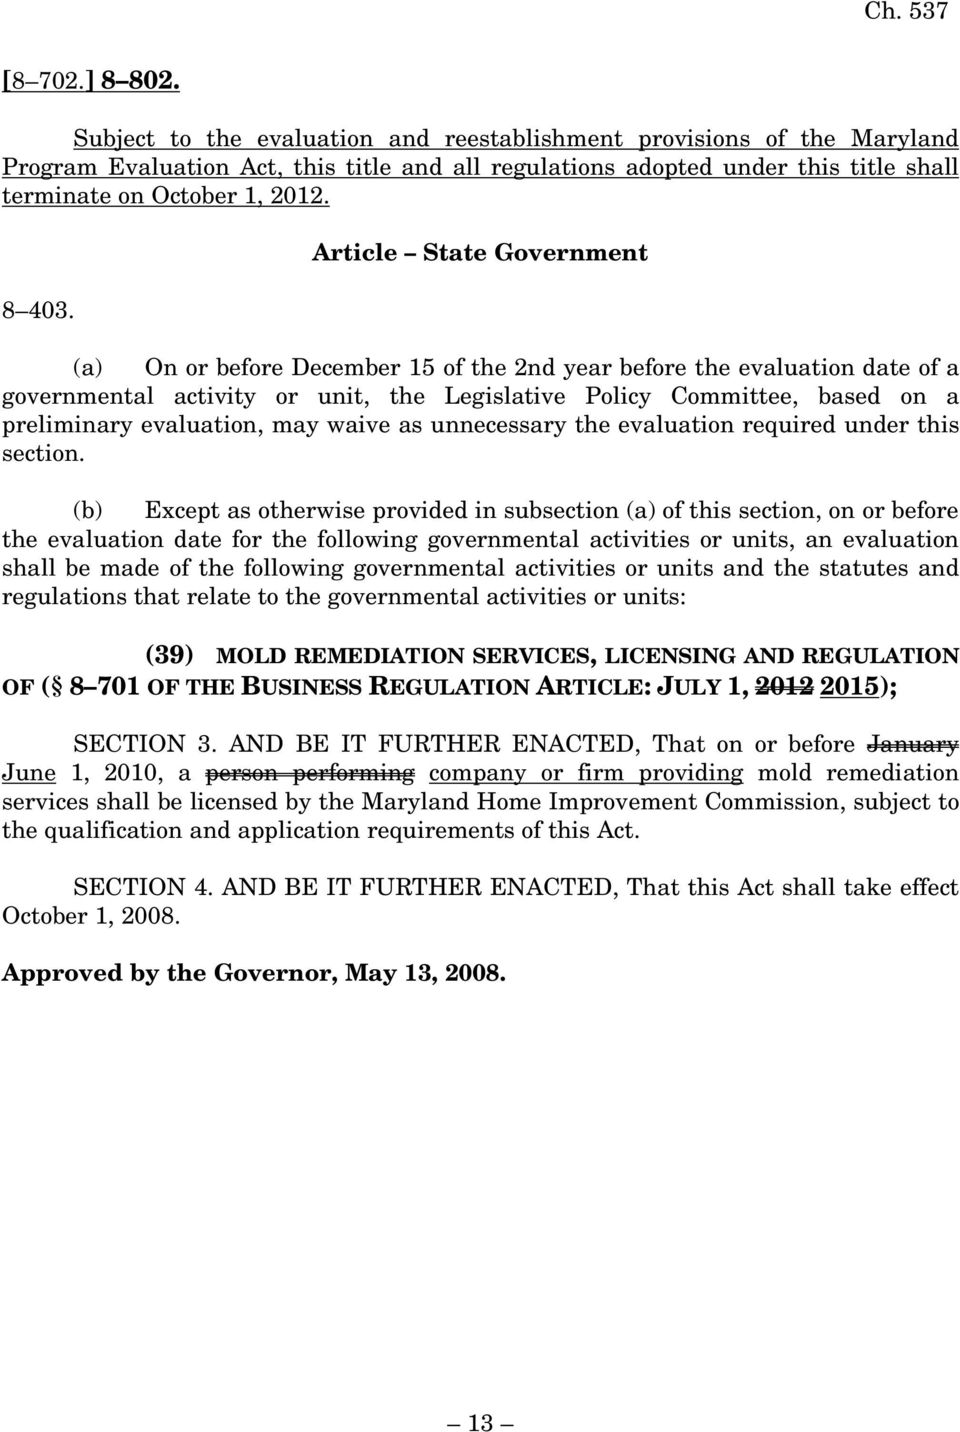 Article State Government (a) On or before December 15 of the 2nd year before the evaluation date of a governmental activity or unit, the Legislative Policy Committee, based on a preliminary